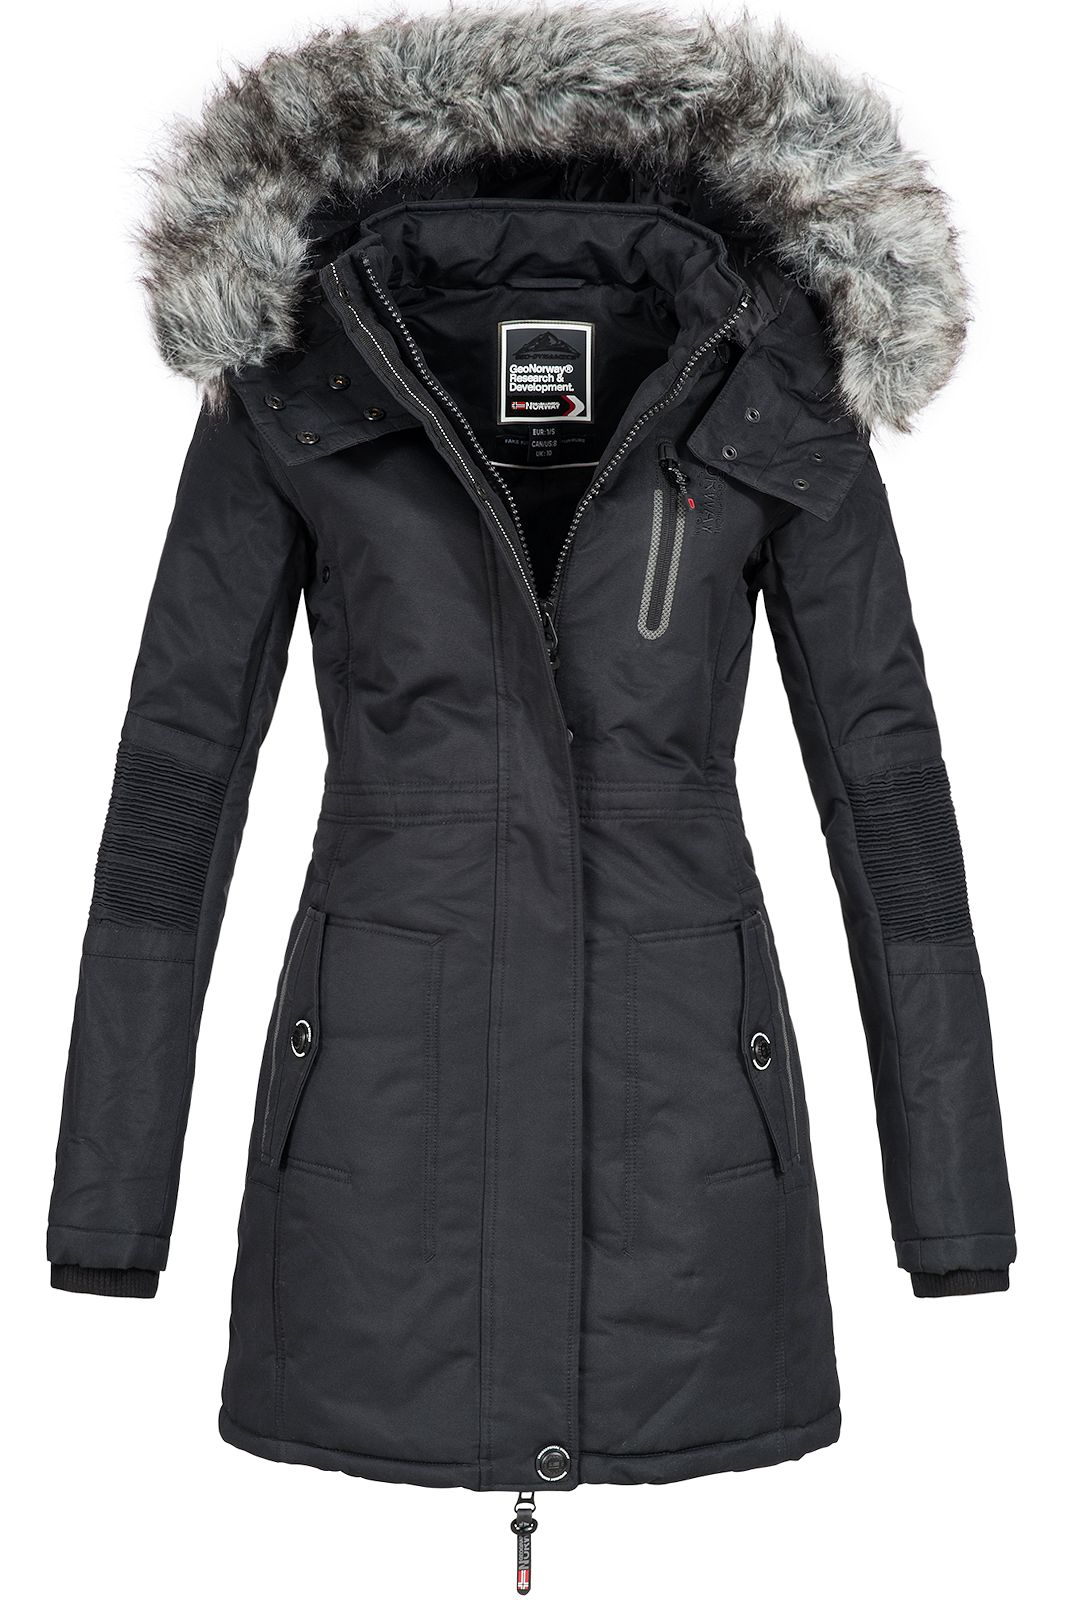 geographical norway damen winterparka coracle jacke anorak. Black Bedroom Furniture Sets. Home Design Ideas